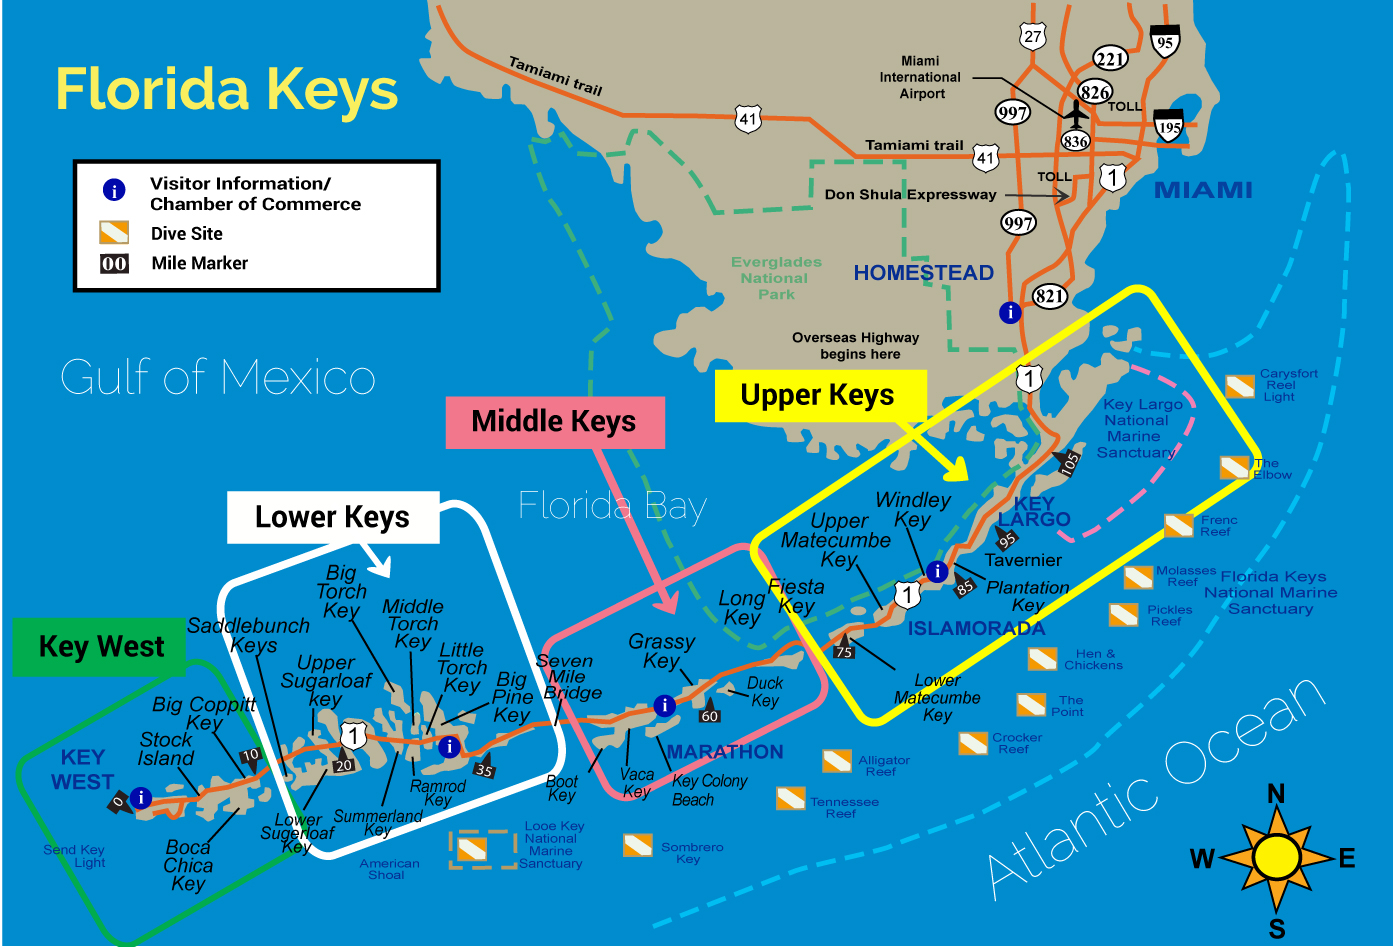 Maps Update 700654 Key Largo Tourist Attractions Map 16 – Florida Tourist Attractions Map